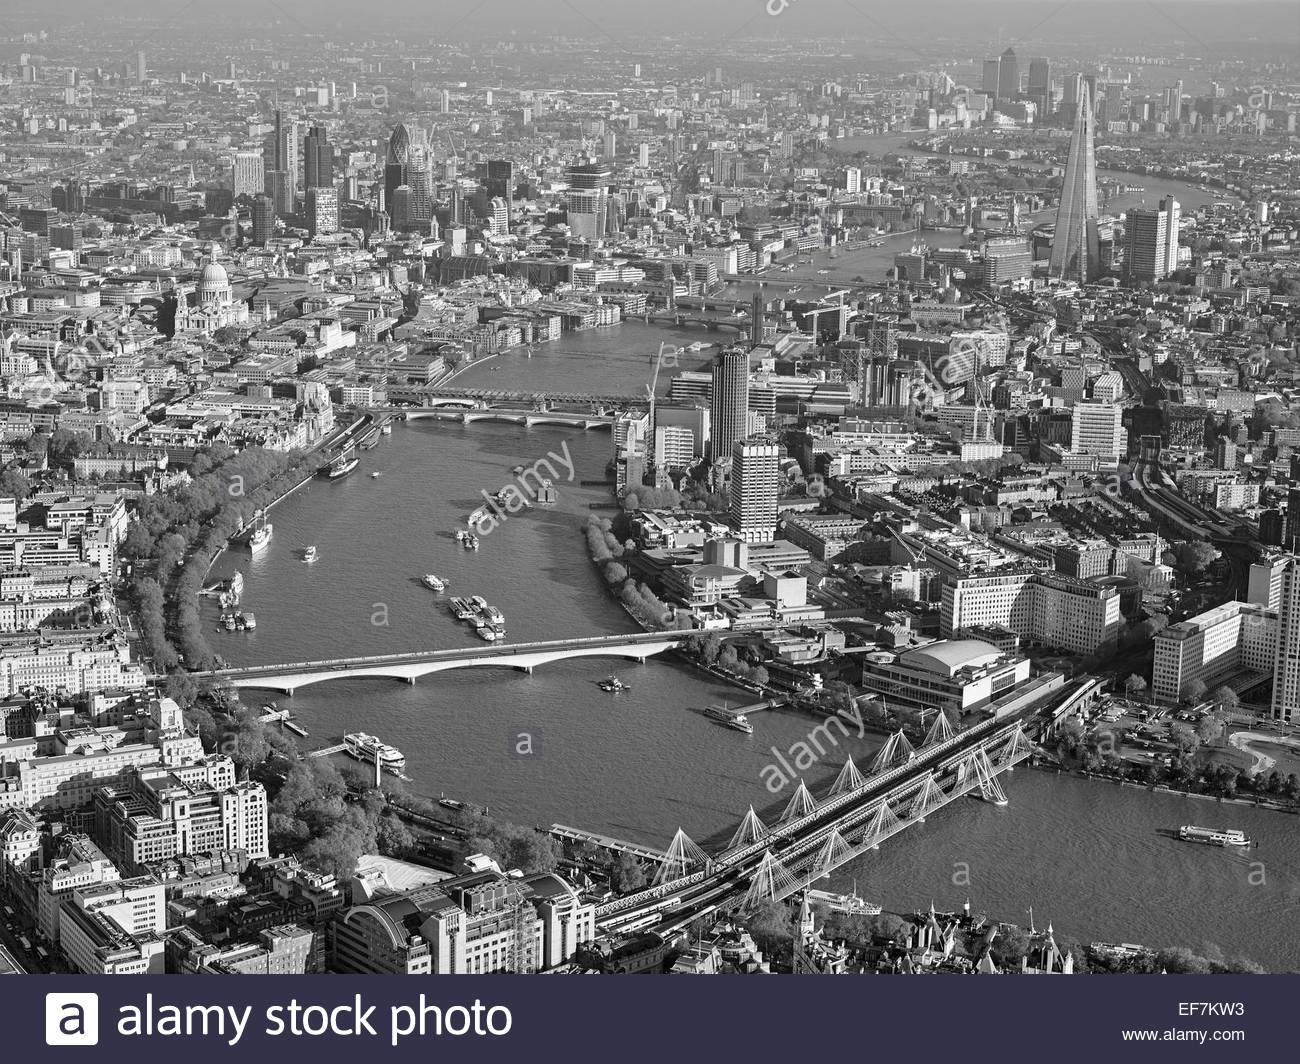 The River Thames from the air, Central London, UK looking East towards the City, Hungerford Bridge foreground - Stock Image